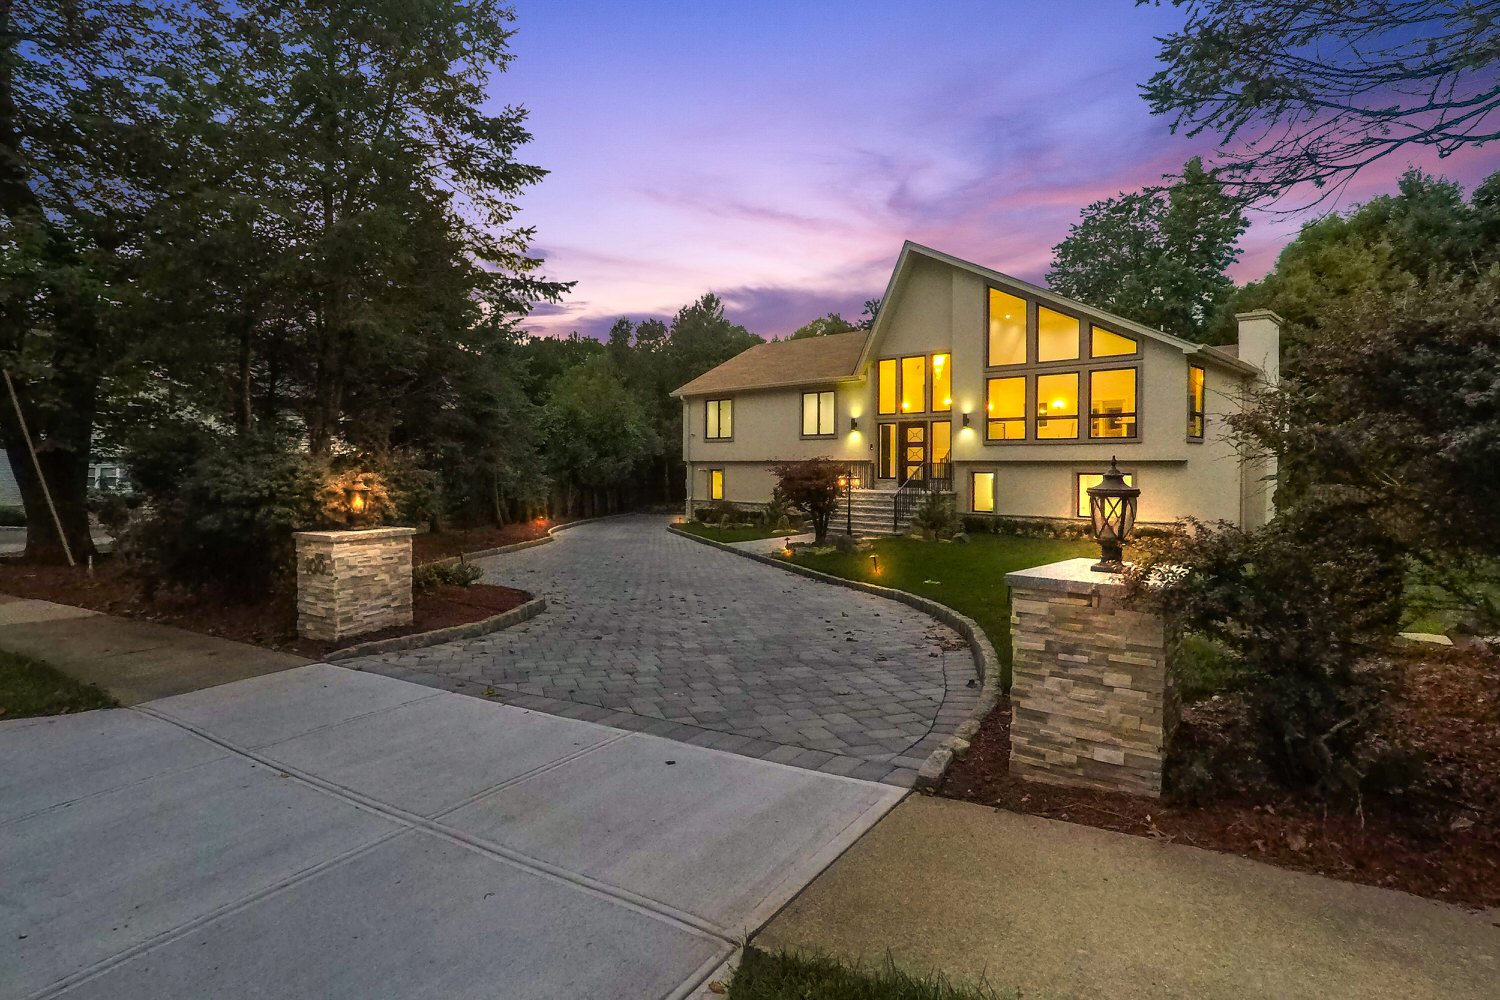 100 Piermont Rd, Closter NJ - Closter, NJ